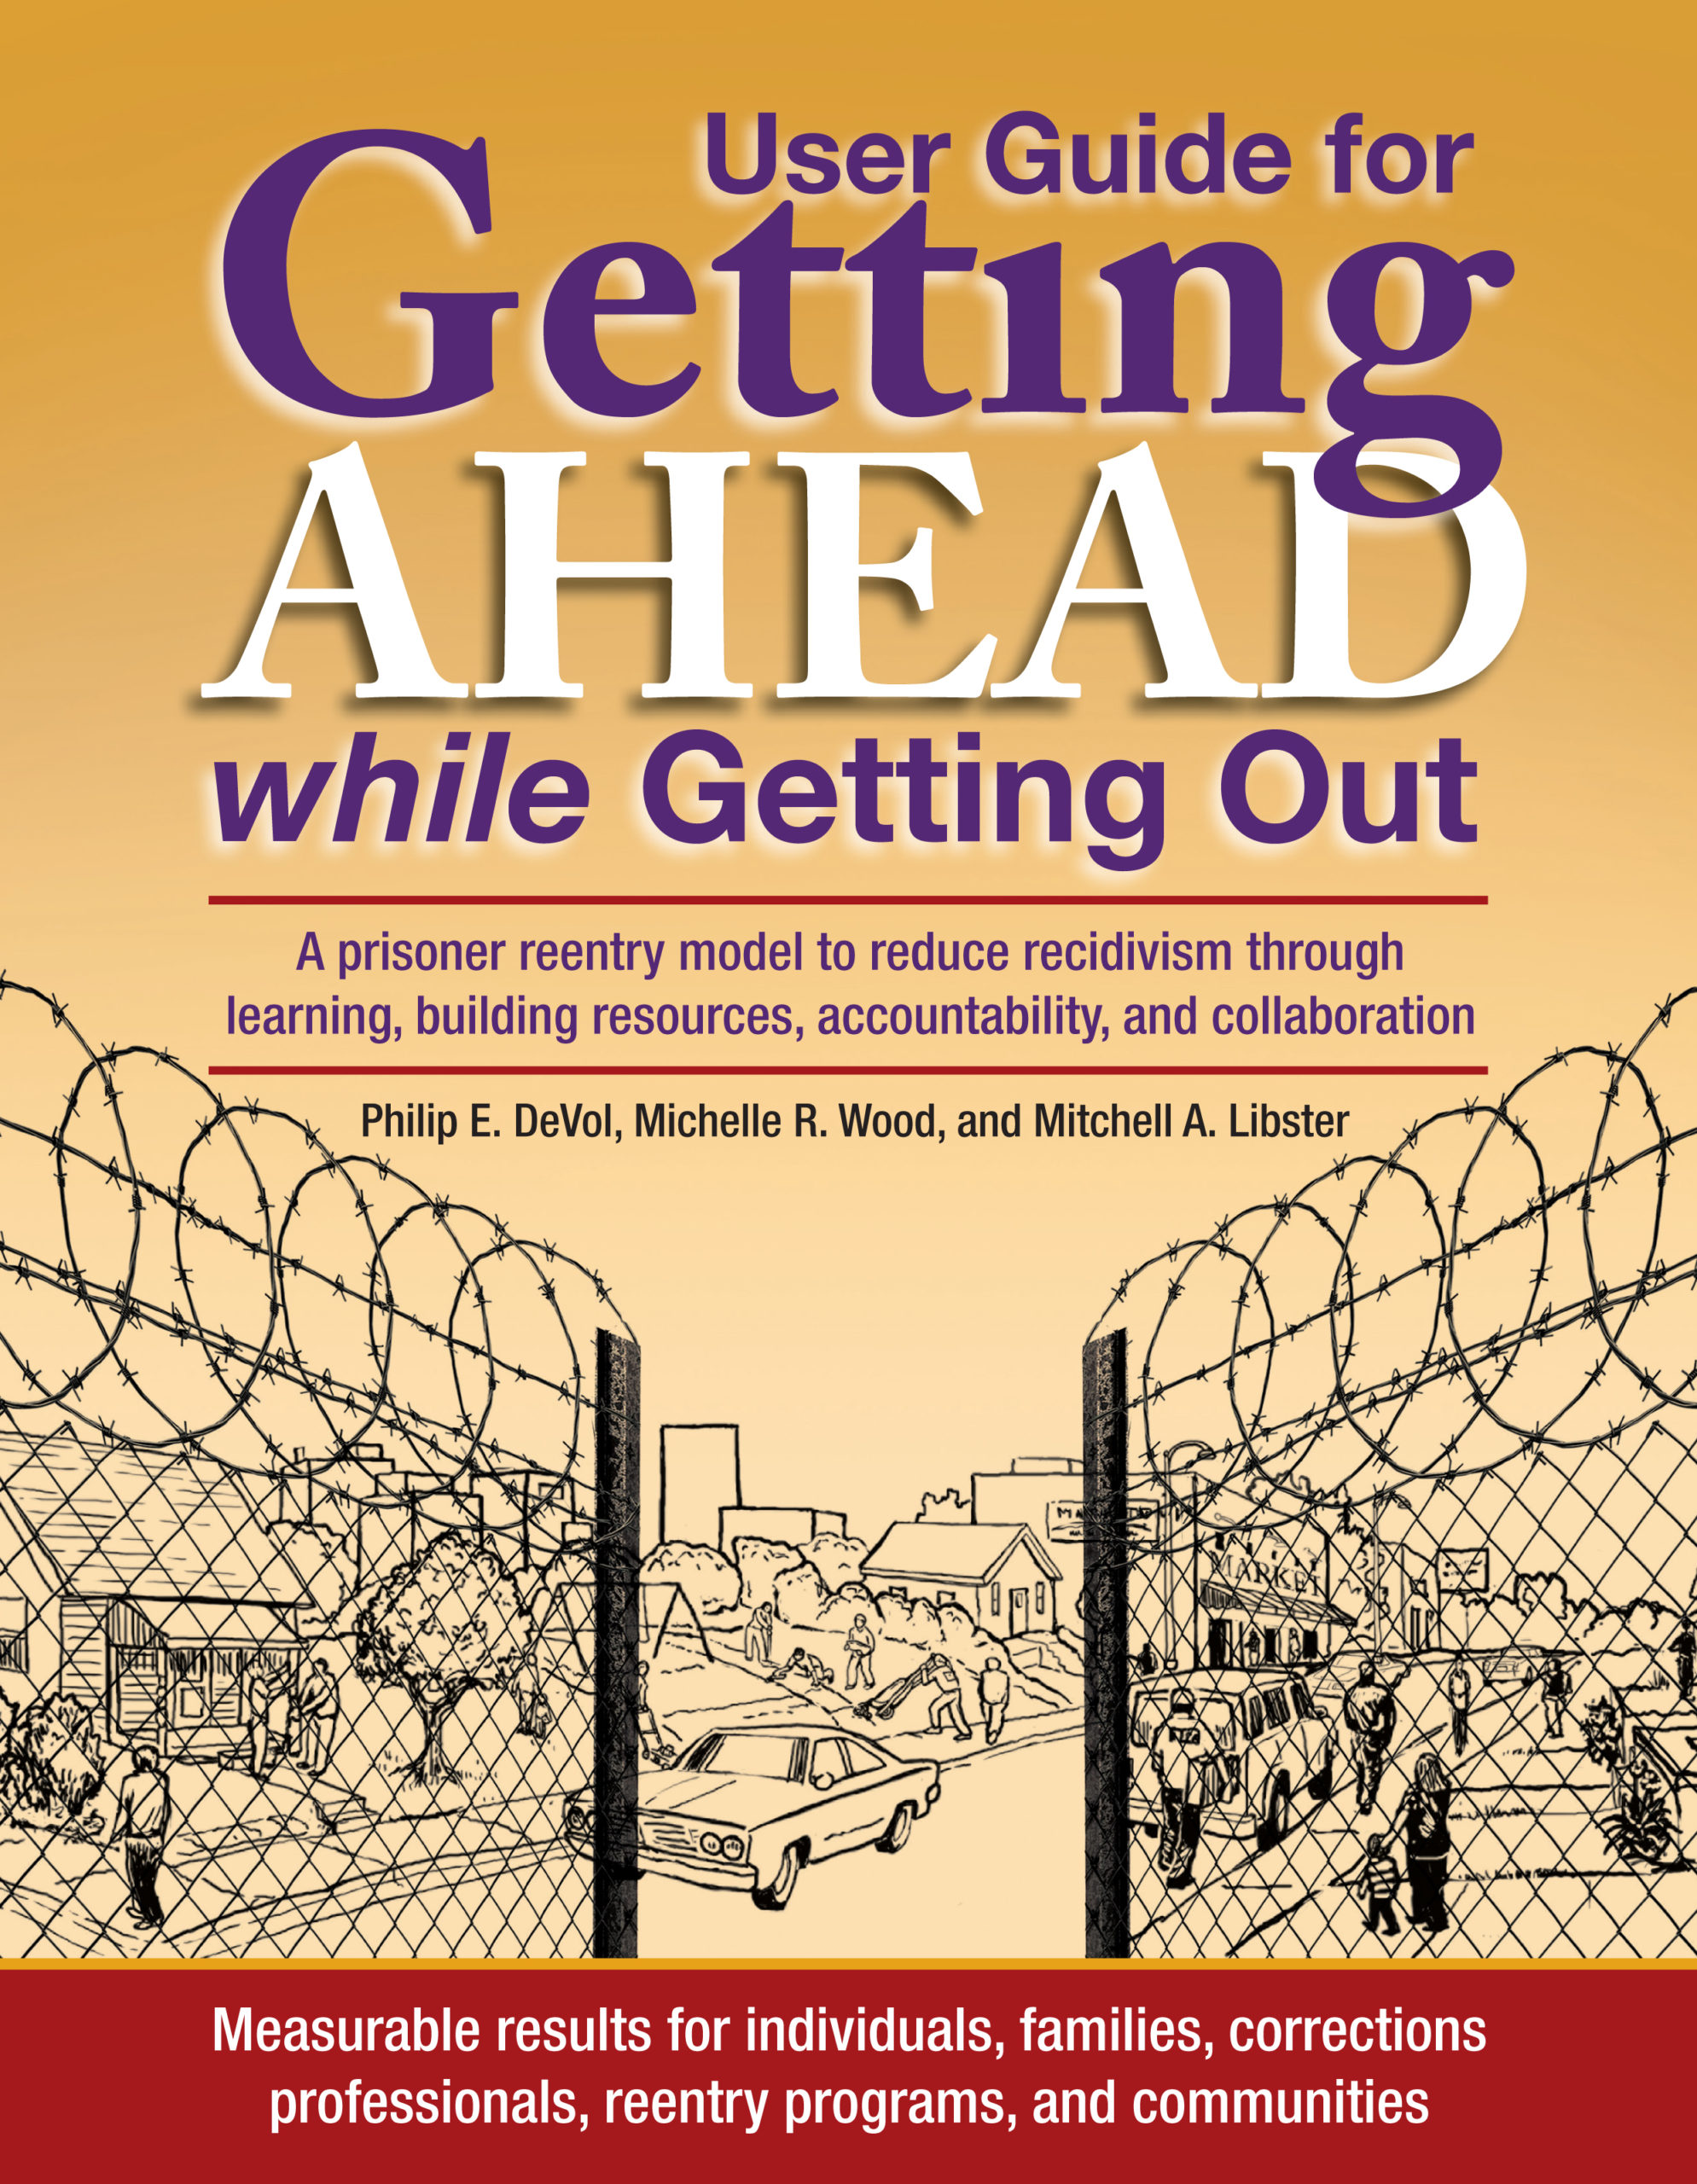 Getting Ahead while Getting Out: A prisoner reentry model to reduce recidivism through learning, building resources, accountability, and collaboration - User's Guide